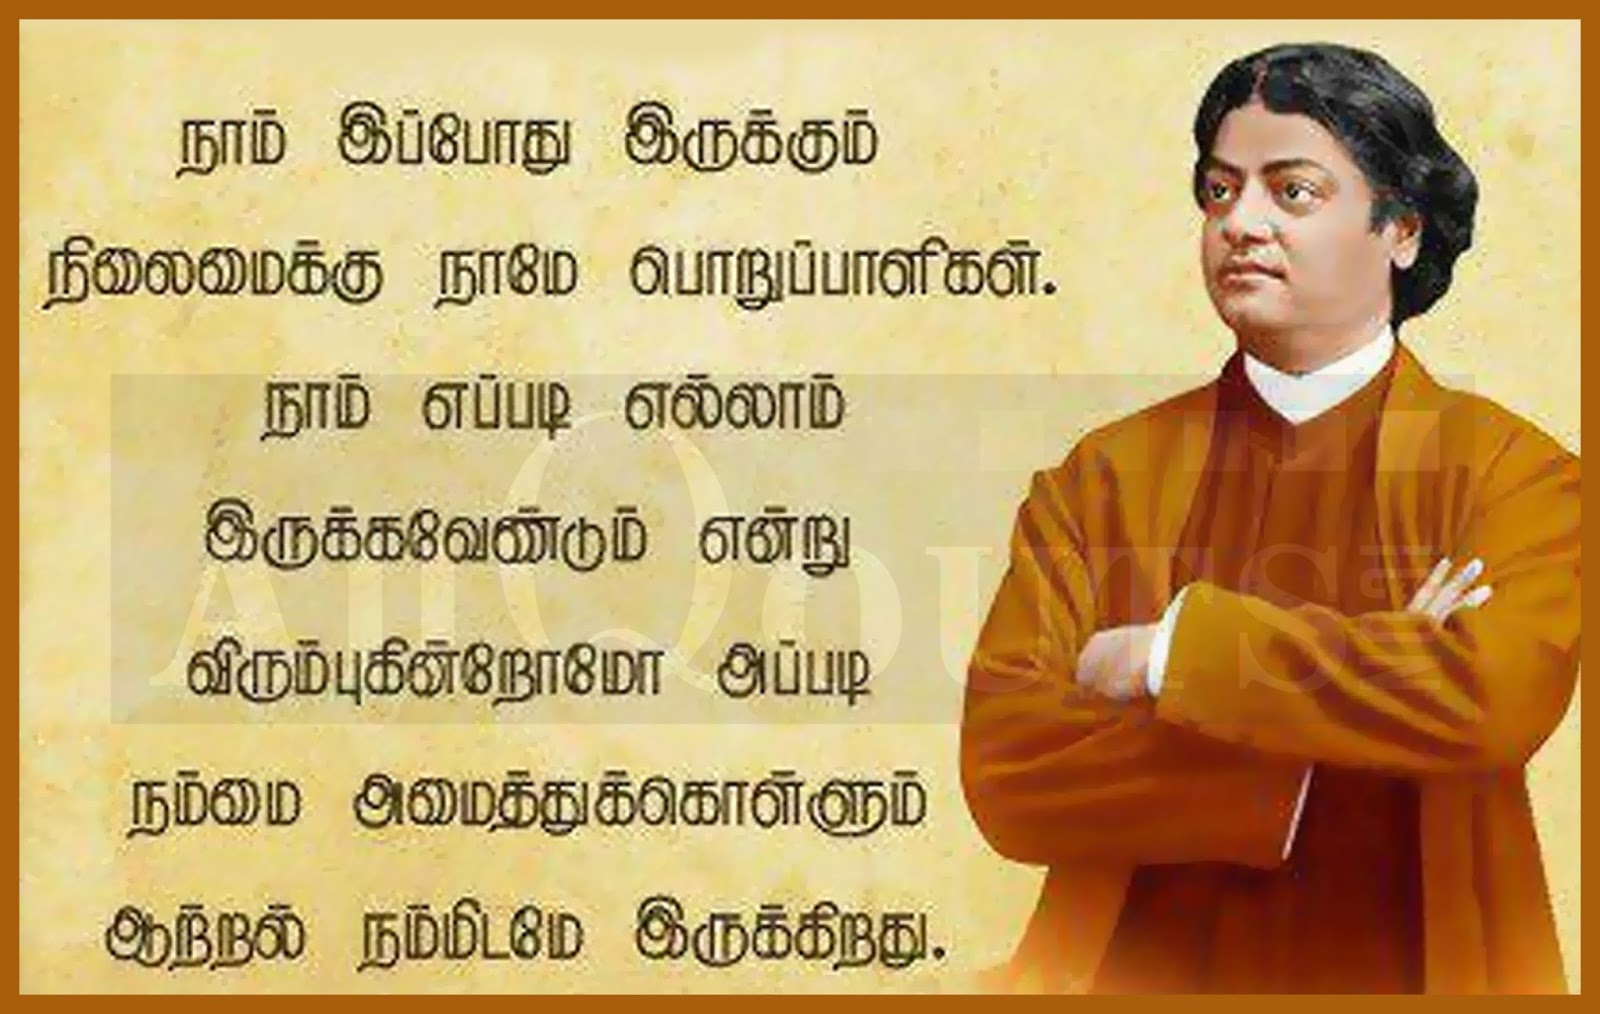 Tamil Quotes And Vivekananda Thoughts Swami Vivekananda Quotes